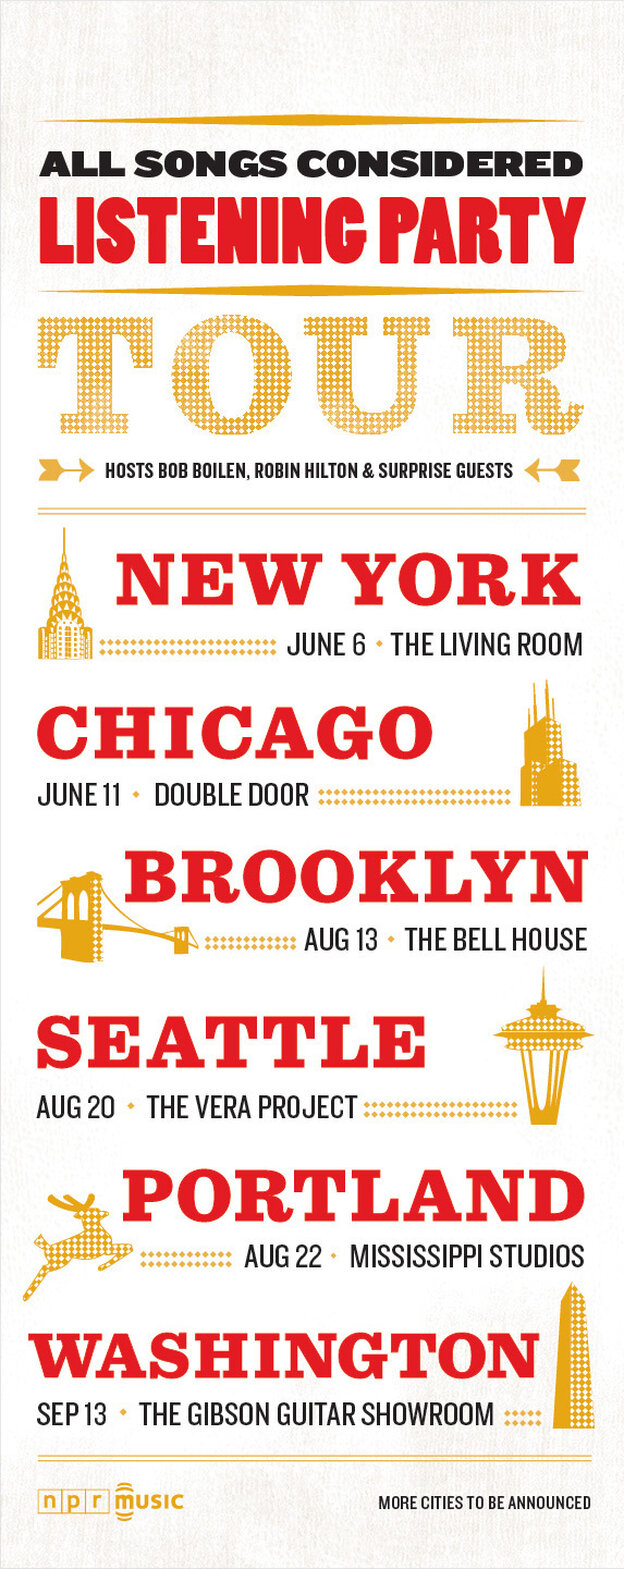 All Songs Considered tour poster